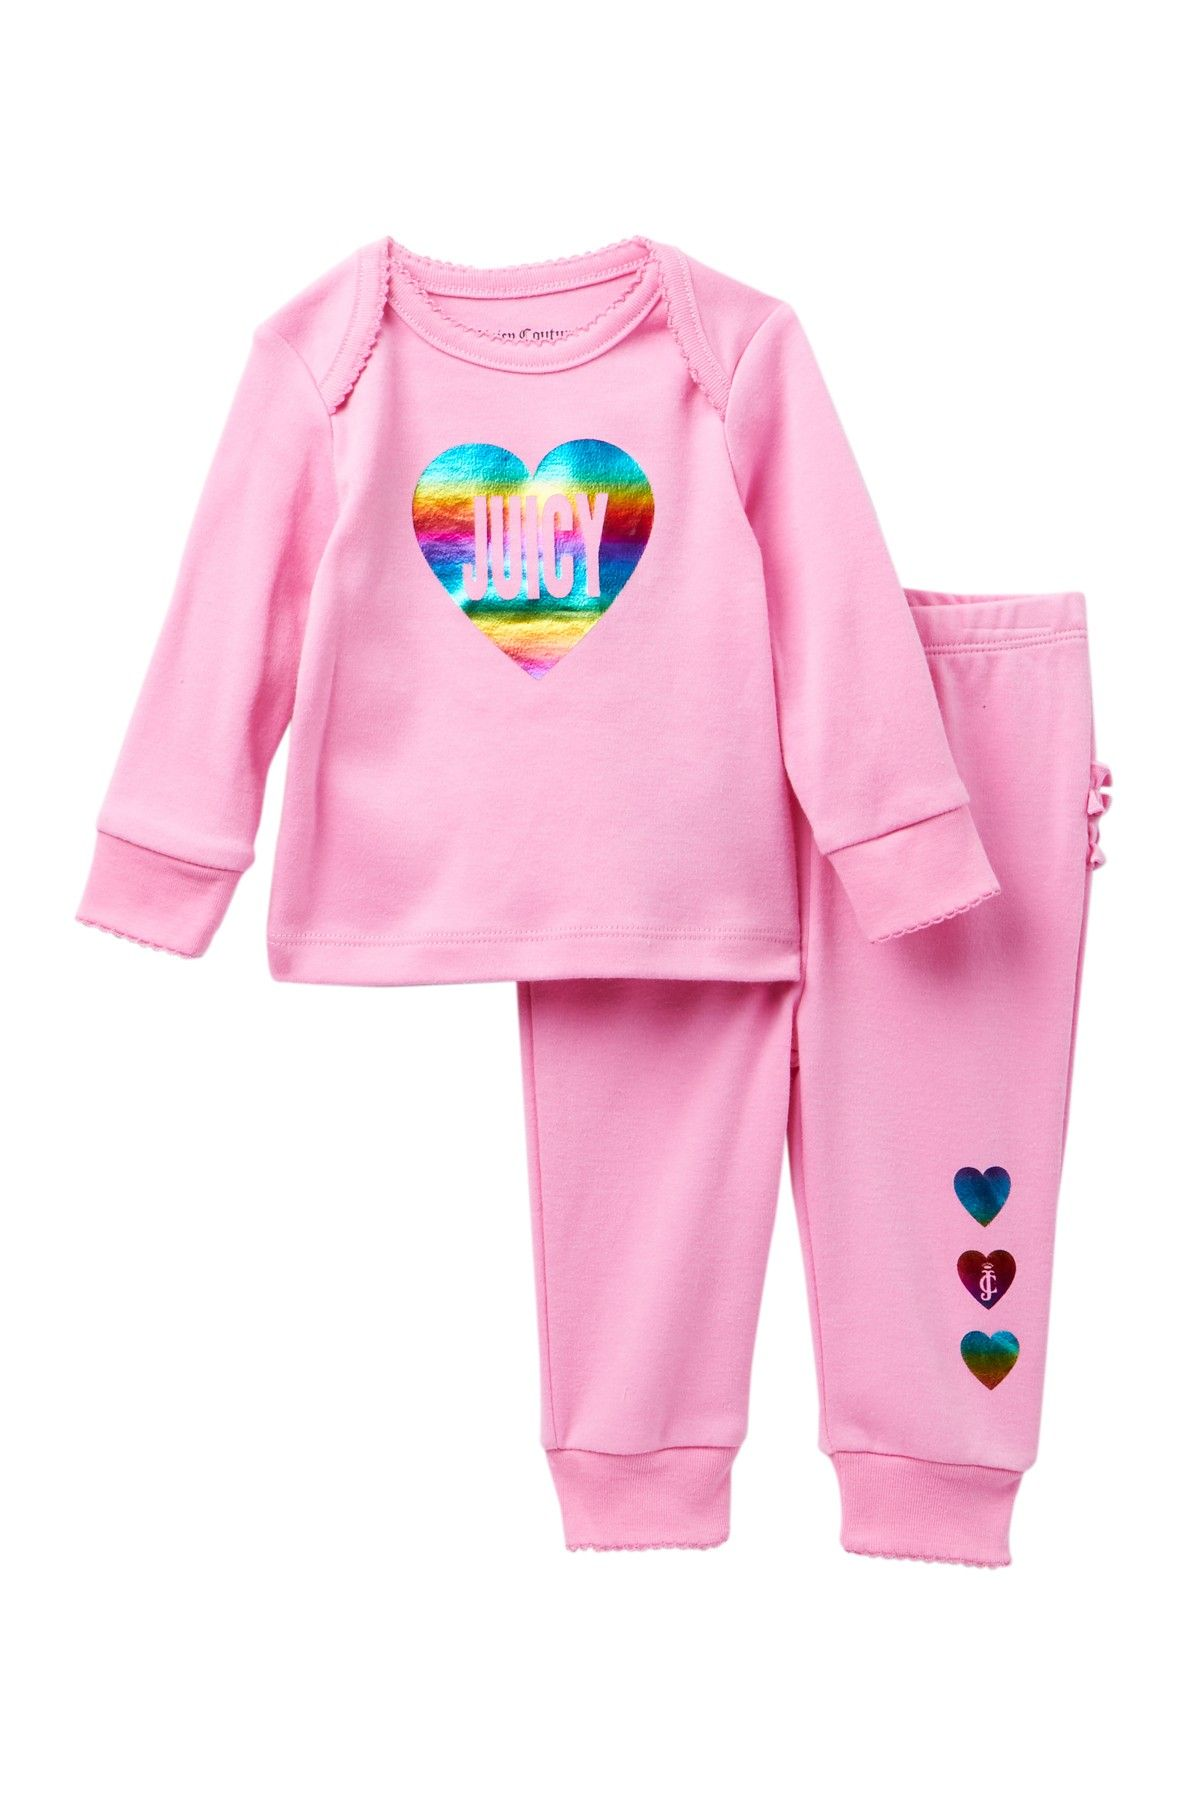 23d9e969e Stylish Dresses For - February 24 2019 at. Juicy Couture - Rainbow Foil  Heart Top & Ruffle Bottom Pants Set (Baby Girls) is now 70% off.